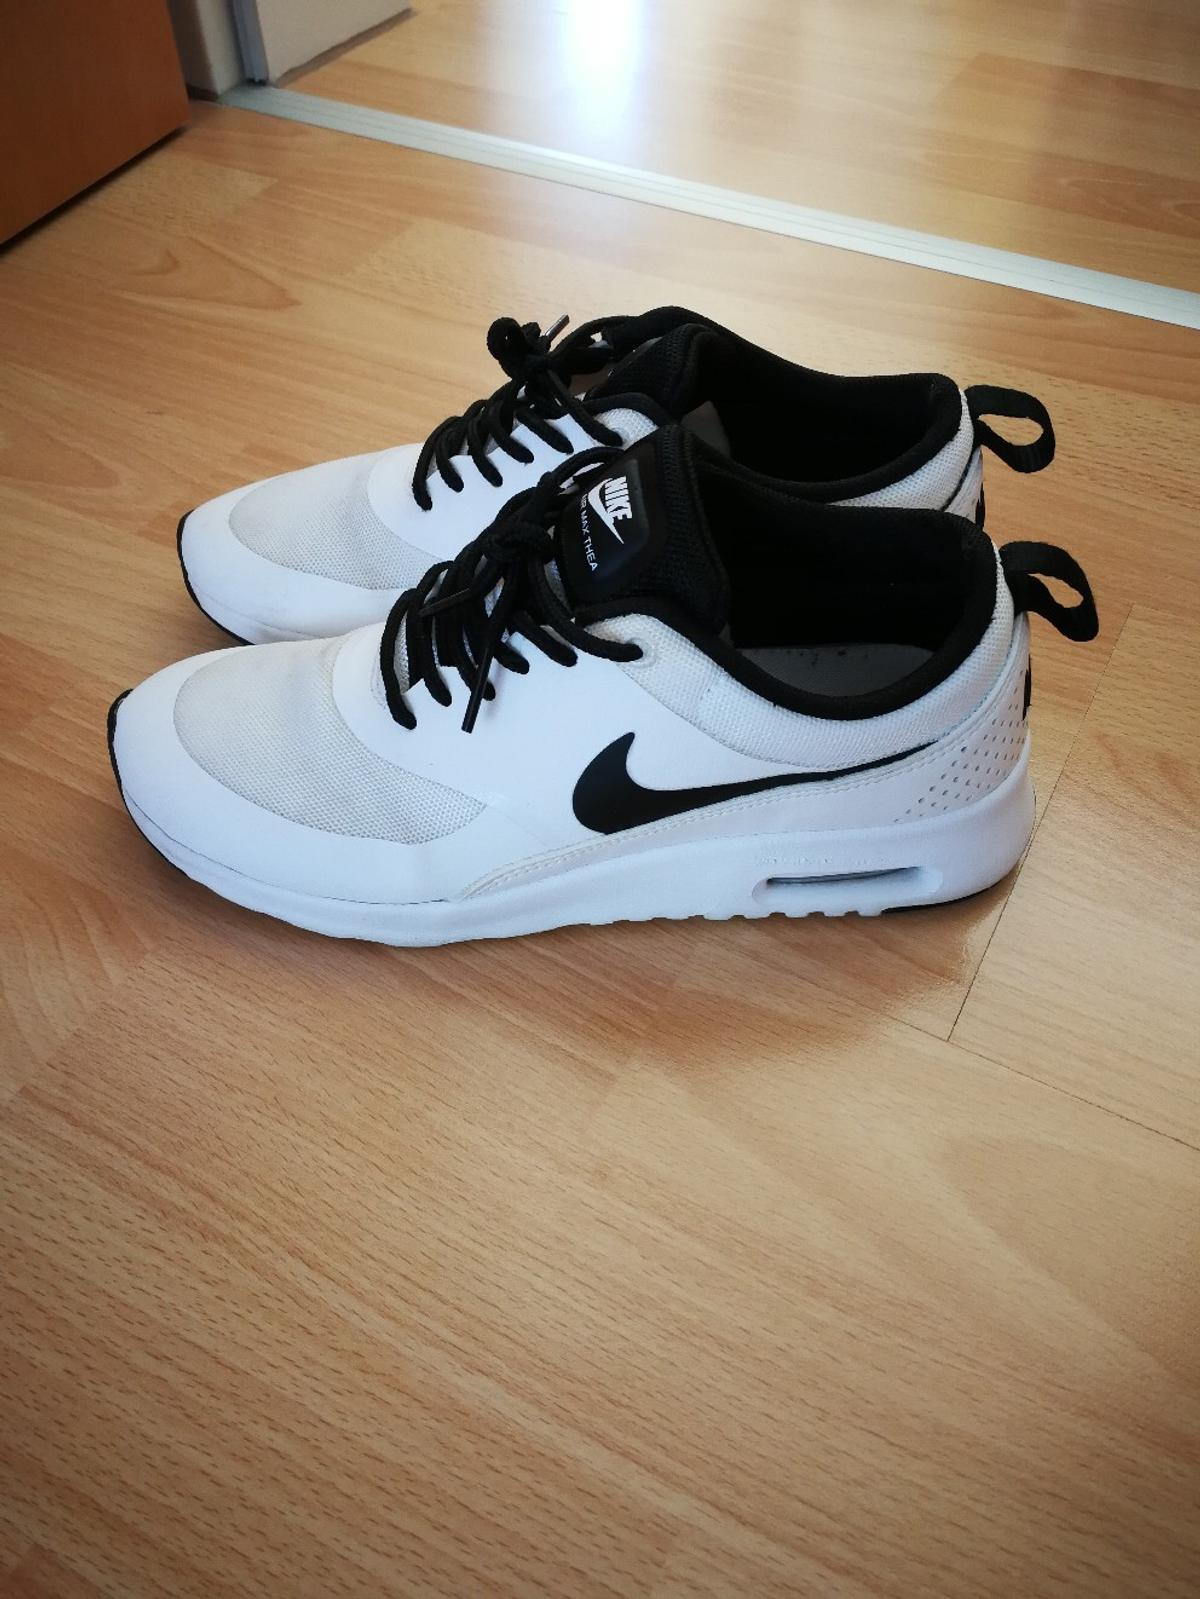 Nike Air Max Thea In 4663 Laakirchen For 50 00 For Sale Shpock